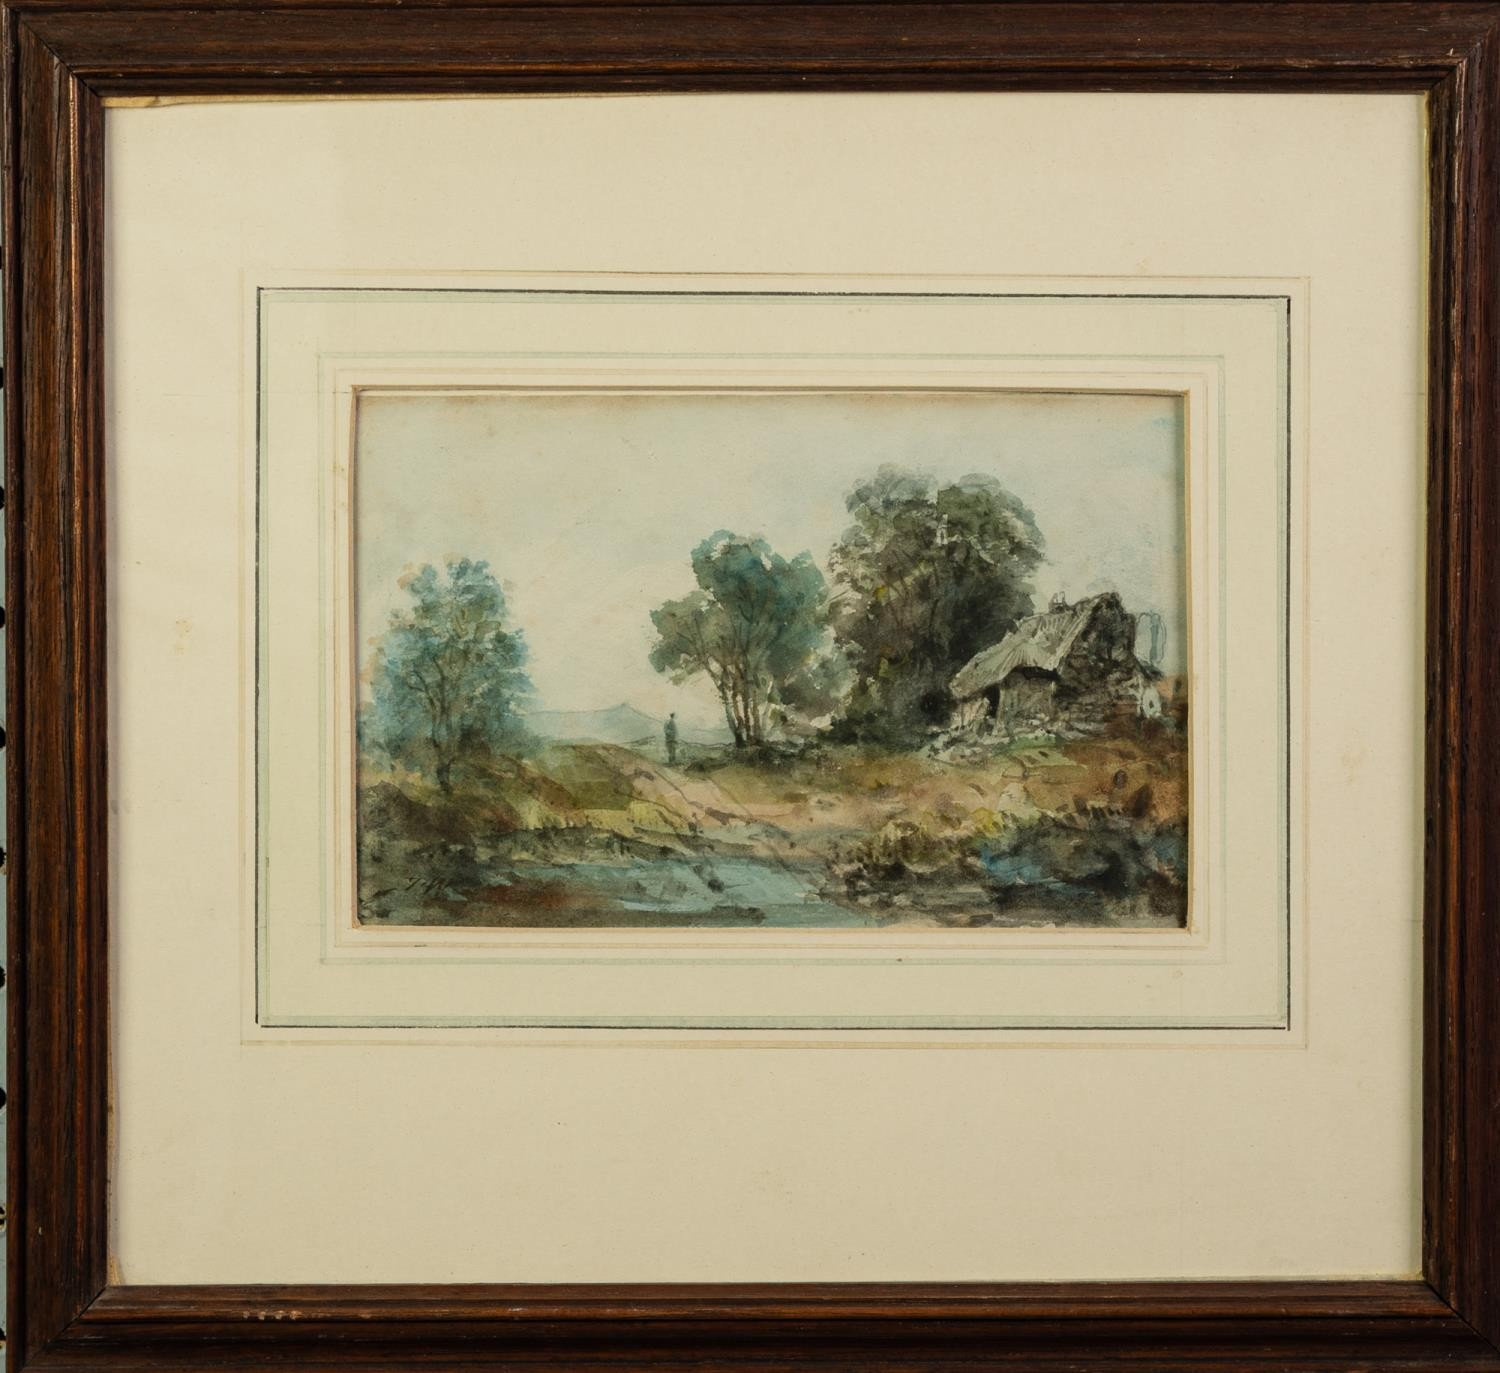 UNATTRIBUTED (NINETEENTH CENTURY) OIL PAINTING Rural landscape with farm building and a maid with - Image 3 of 4